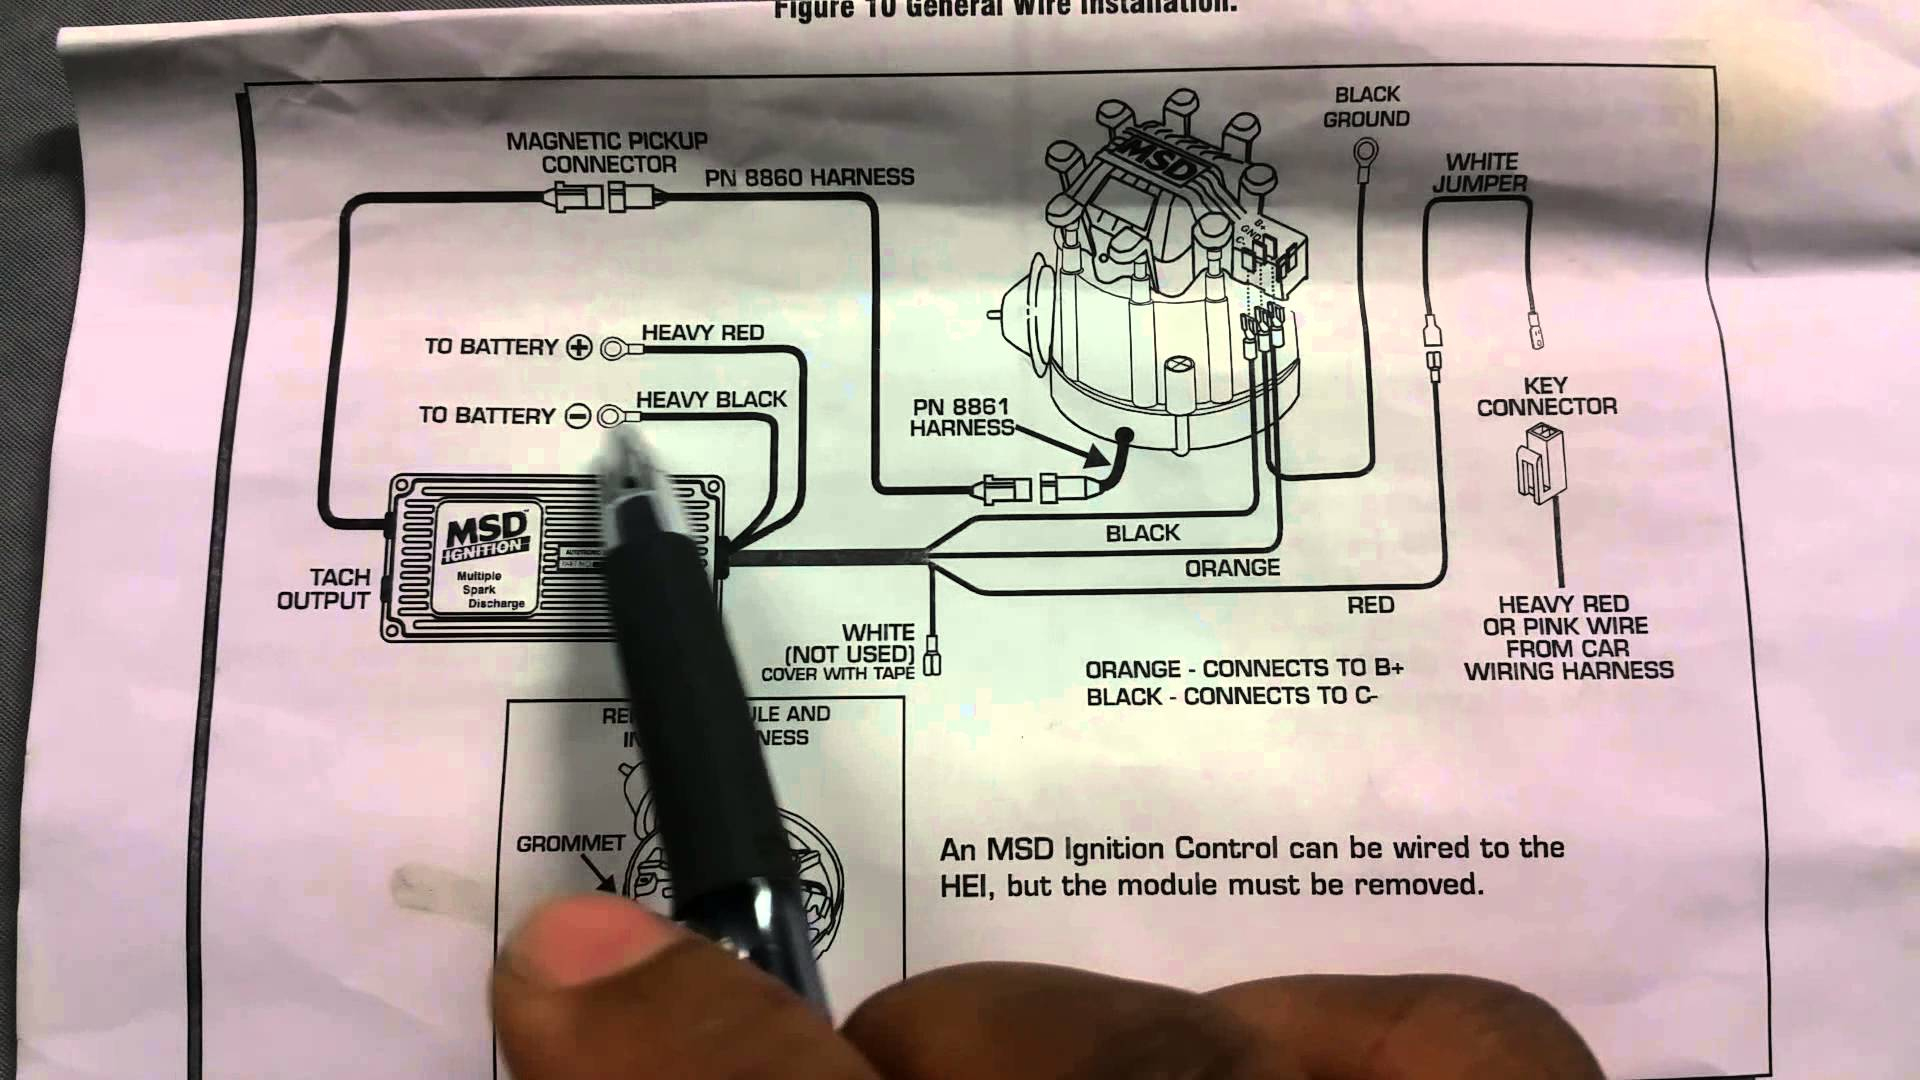 Msd Ignition Box Wiring Diagram - Motherwill - Msd Ignition Wiring Diagram Chevy